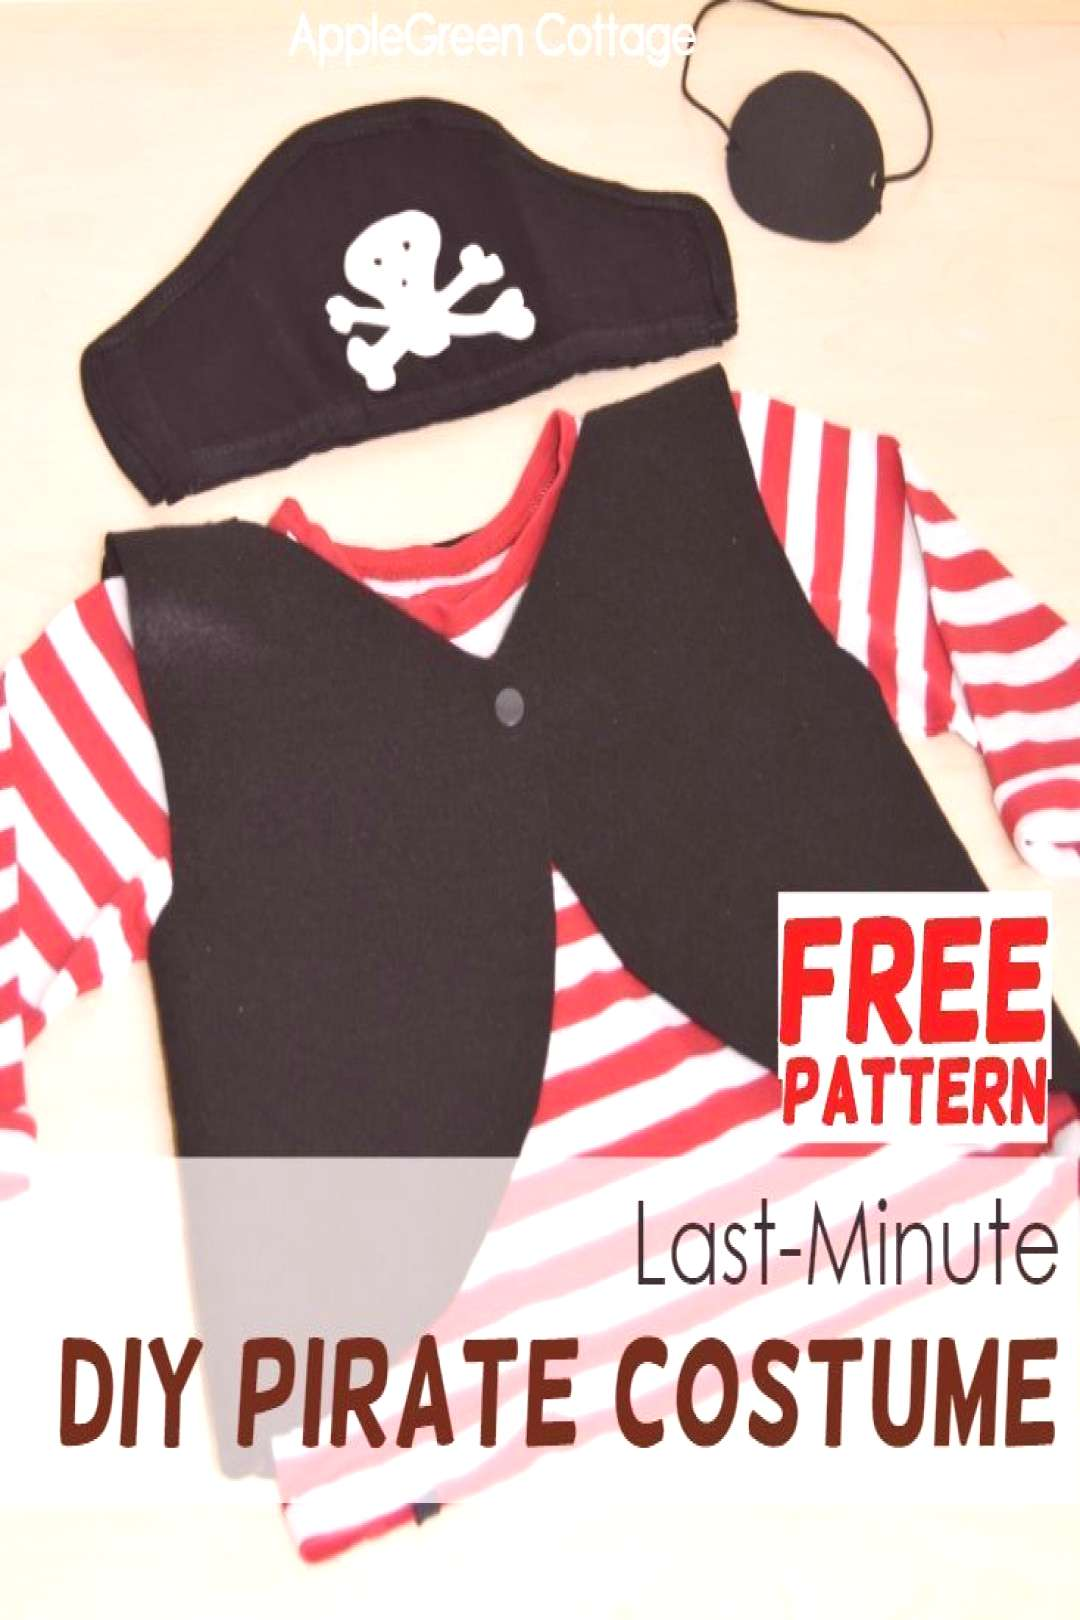 Last-Minute Diy Pirate Costume - Easy Homemade Pirate Costume For Kids - AppleGreen Cottage Heres